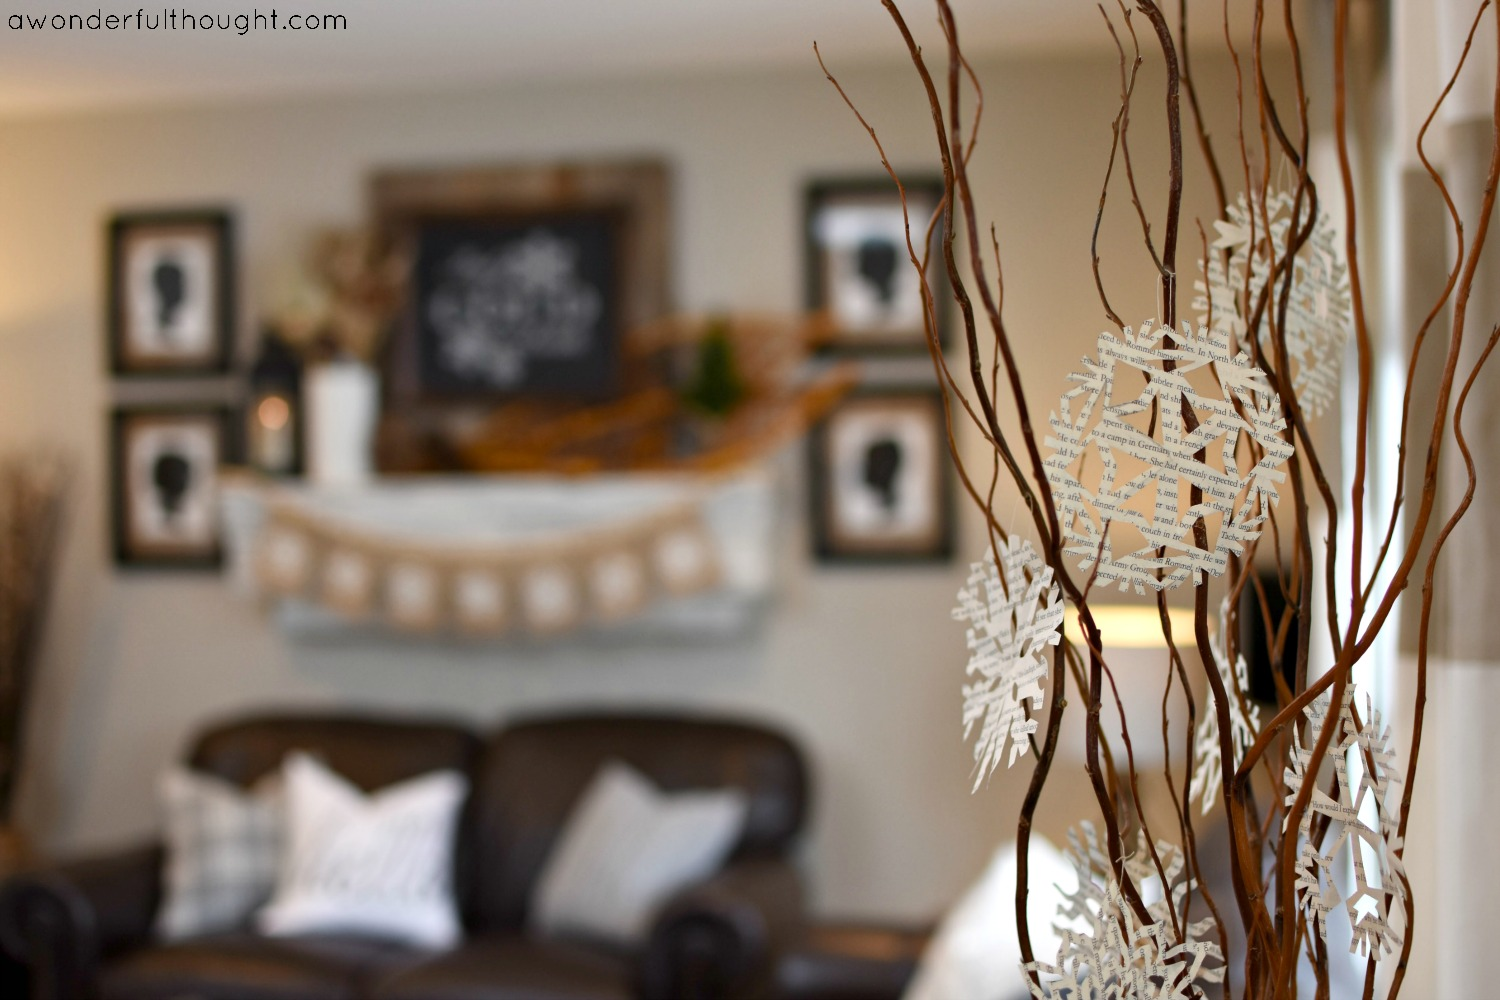 Rustic Winter Mantel | awonderfulthought.com